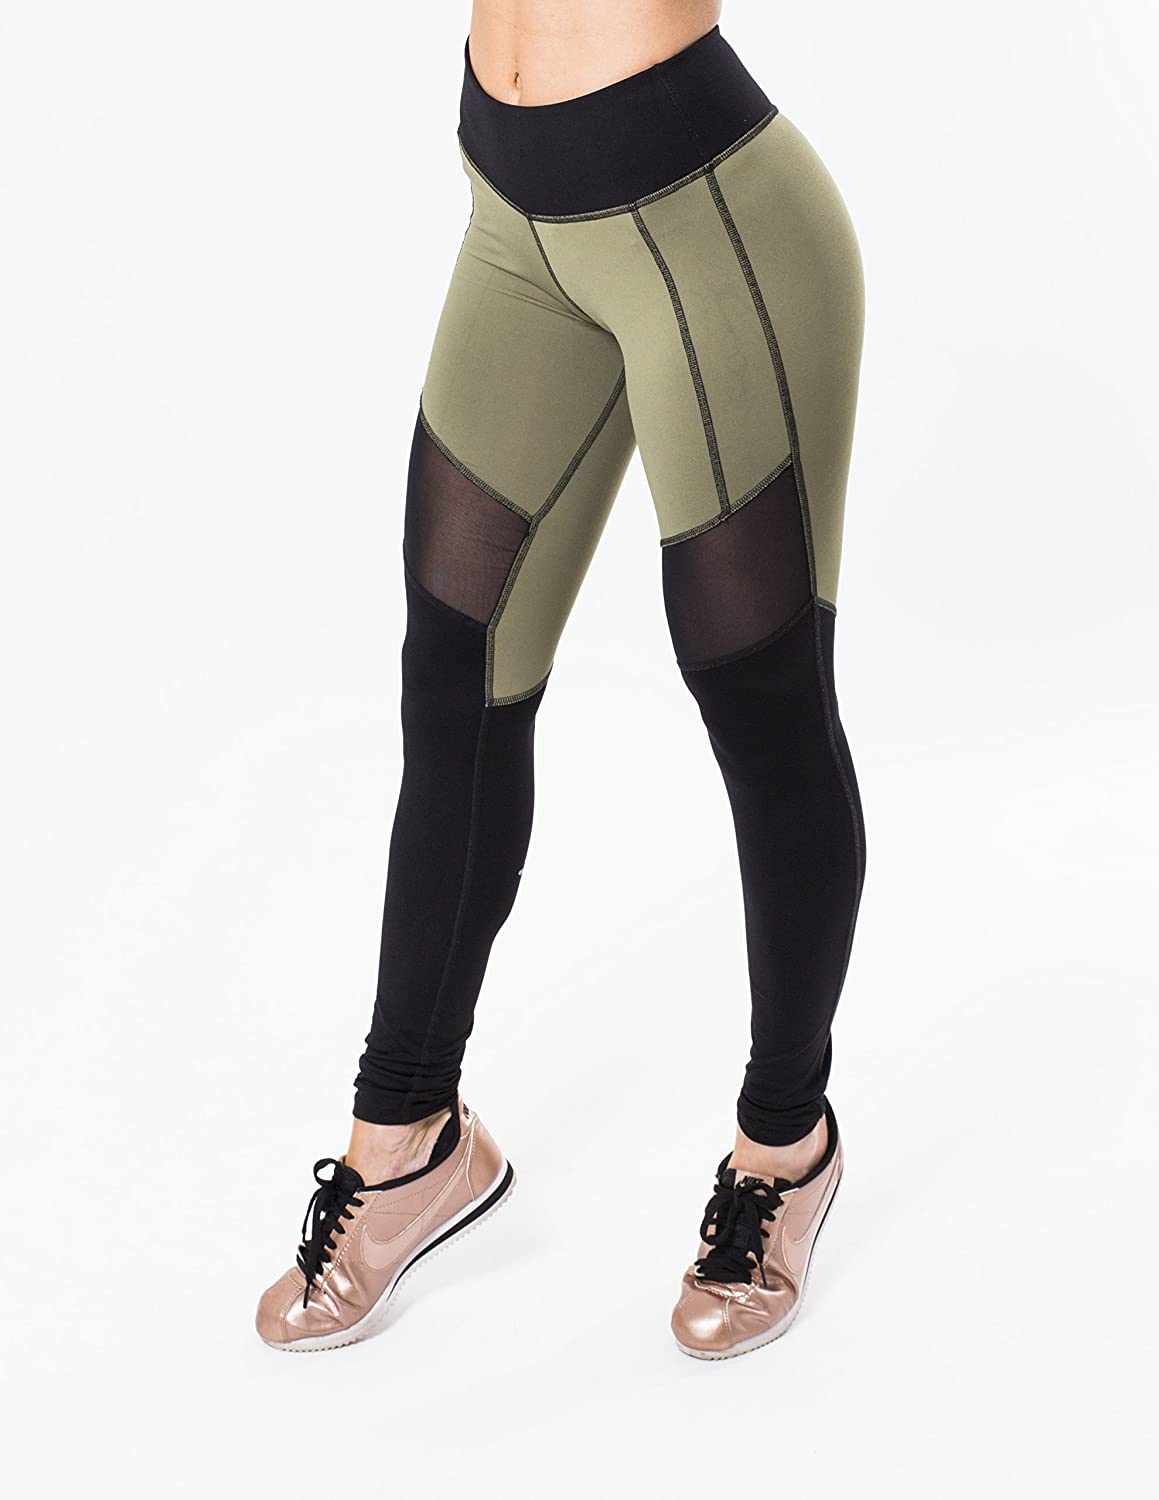 Moisture Wicking High Compression Body Shaping Athletic Wear with UV Protection Iron Lily Women/'s Vanquish Leggings Performance Mesh Elastic Waist Band